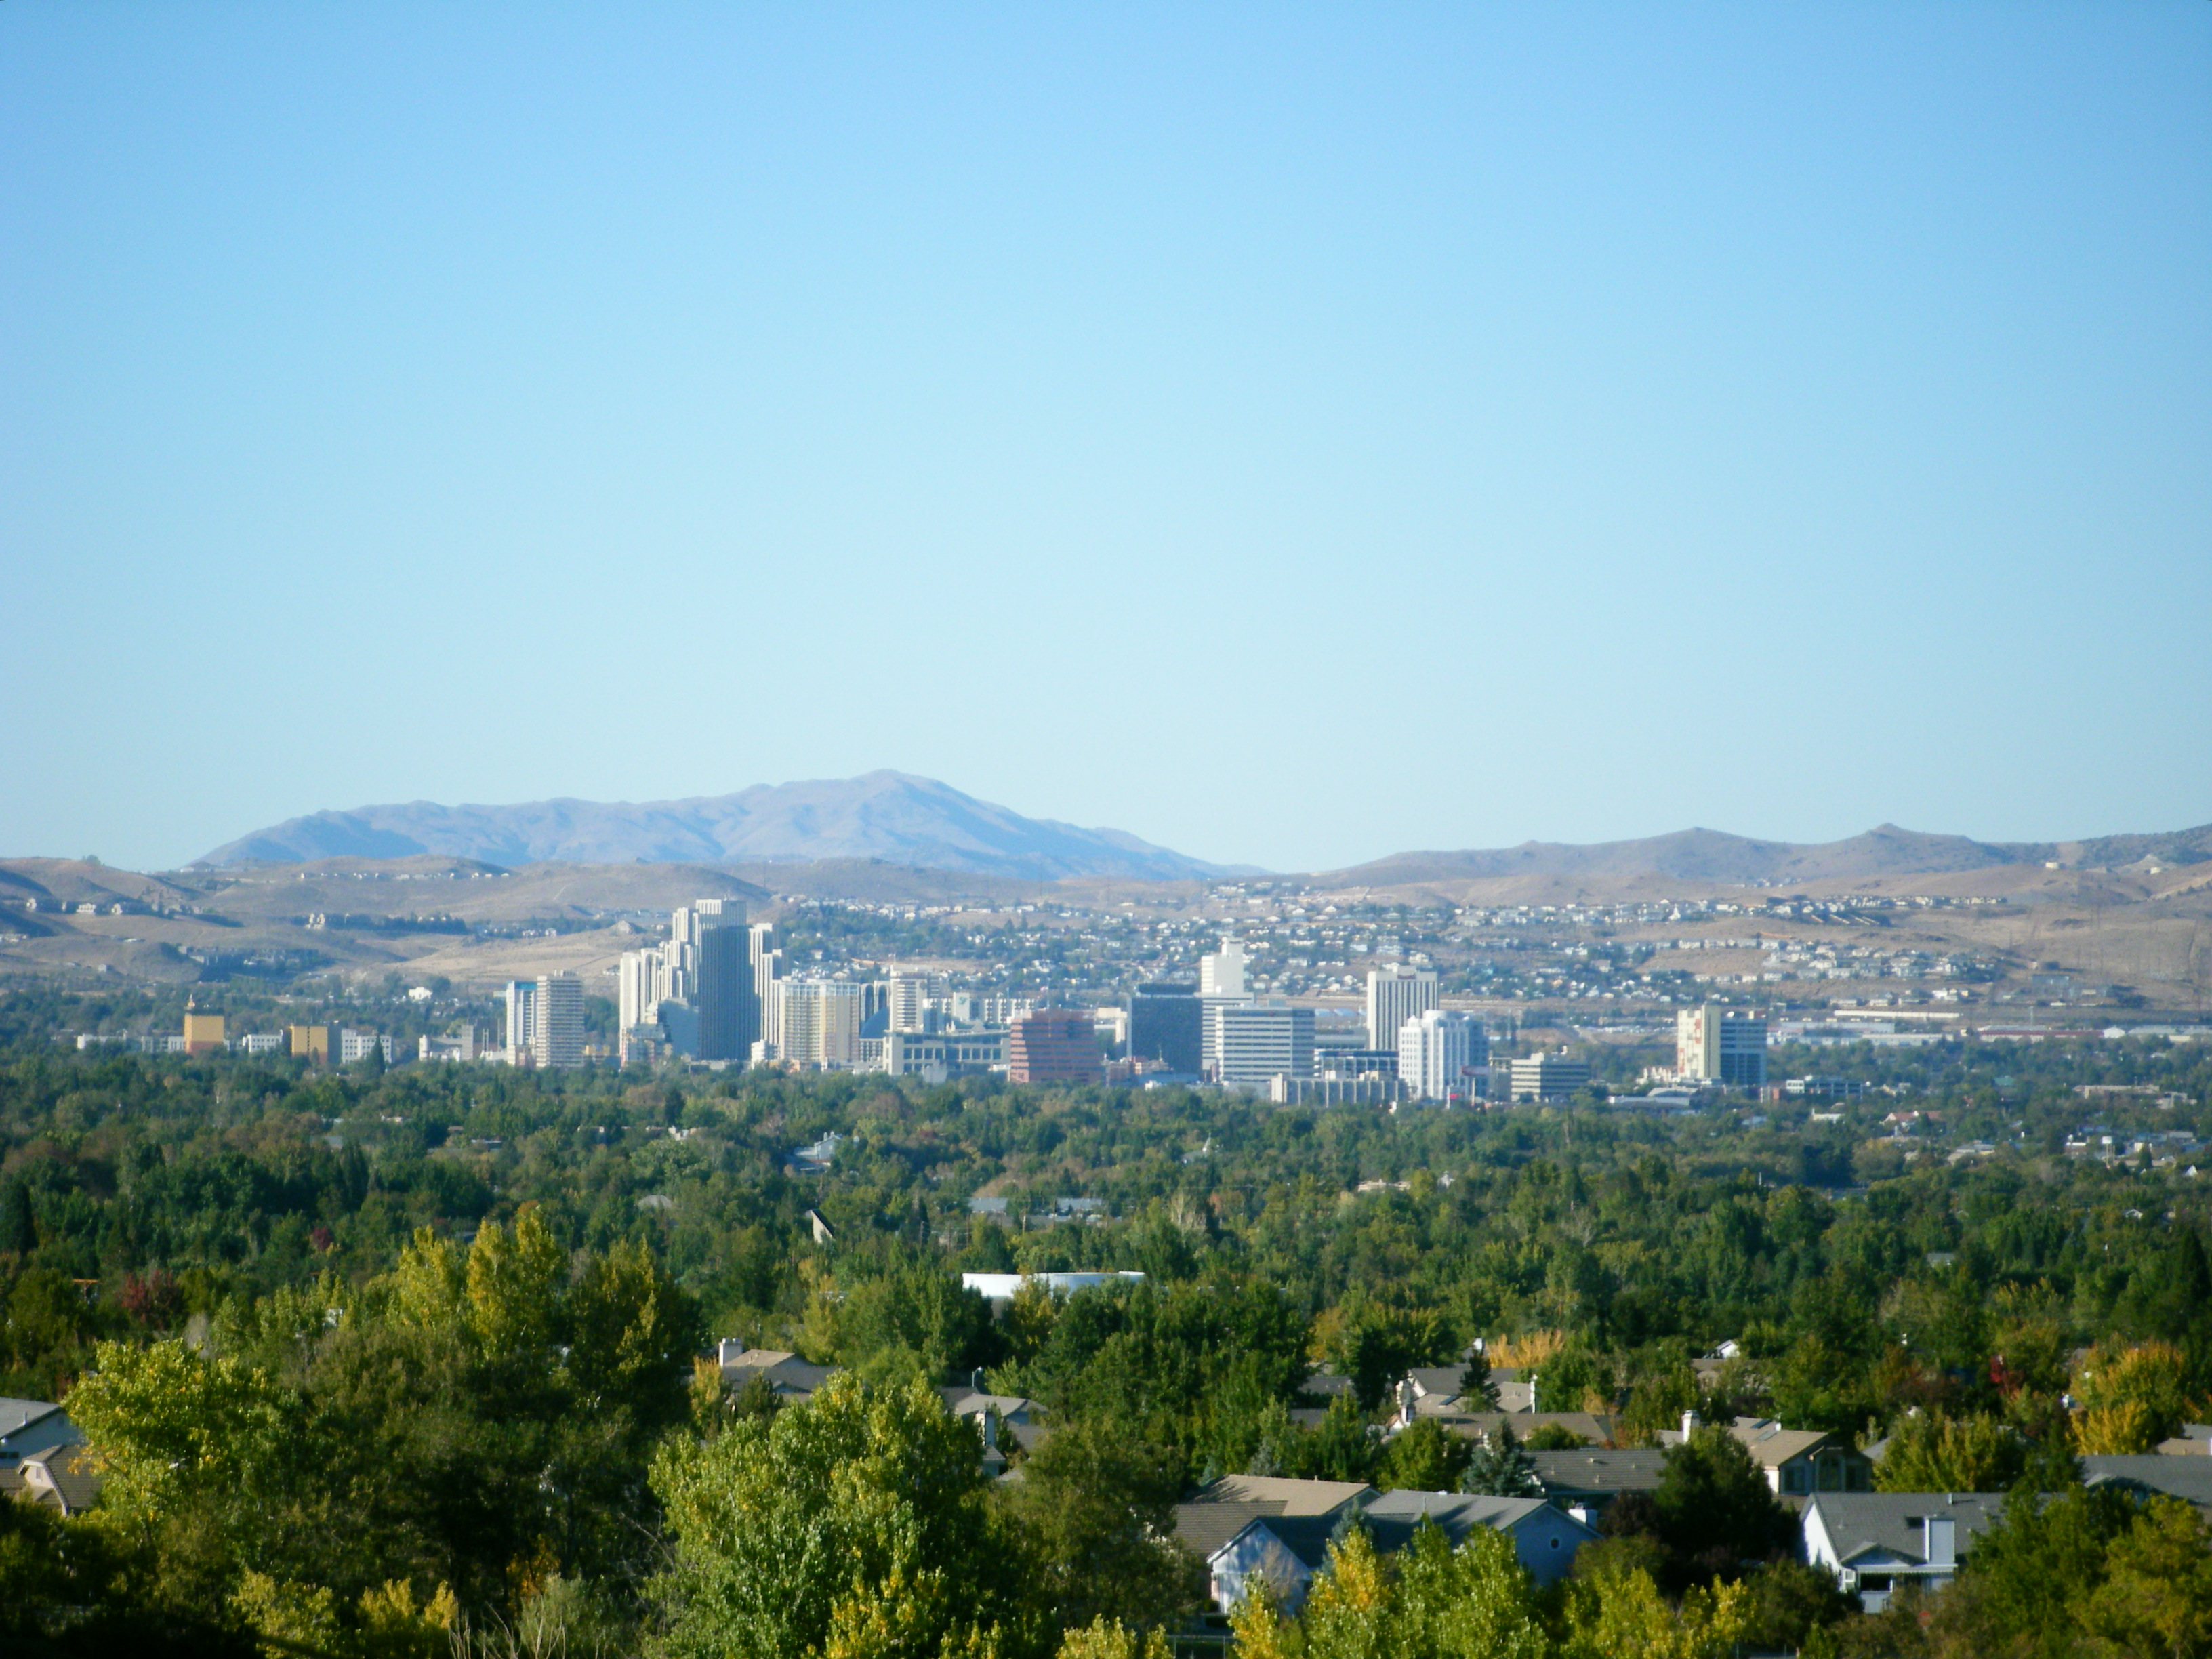 Reno Nevada Wikipedia